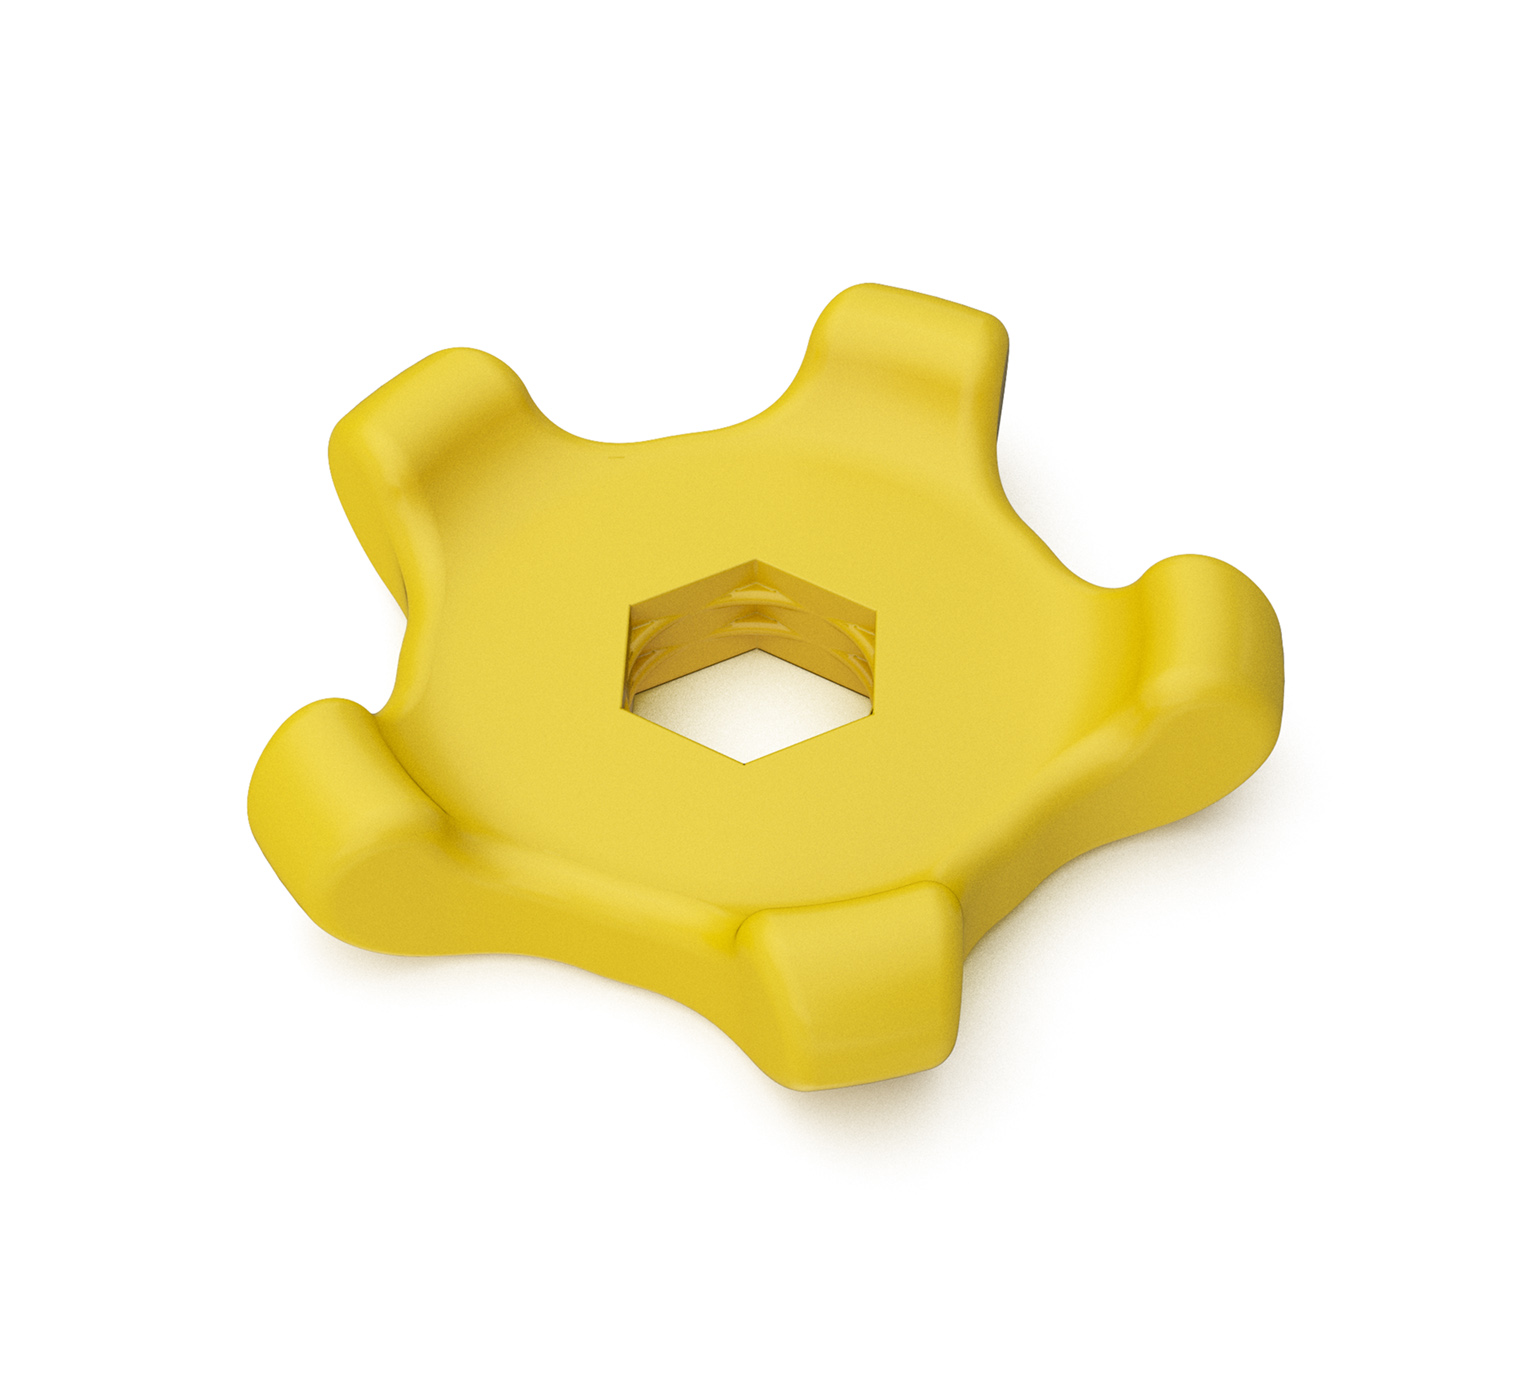 1055516 Polypropylene Star Knob - 3.207 x 0.701 in alt 1